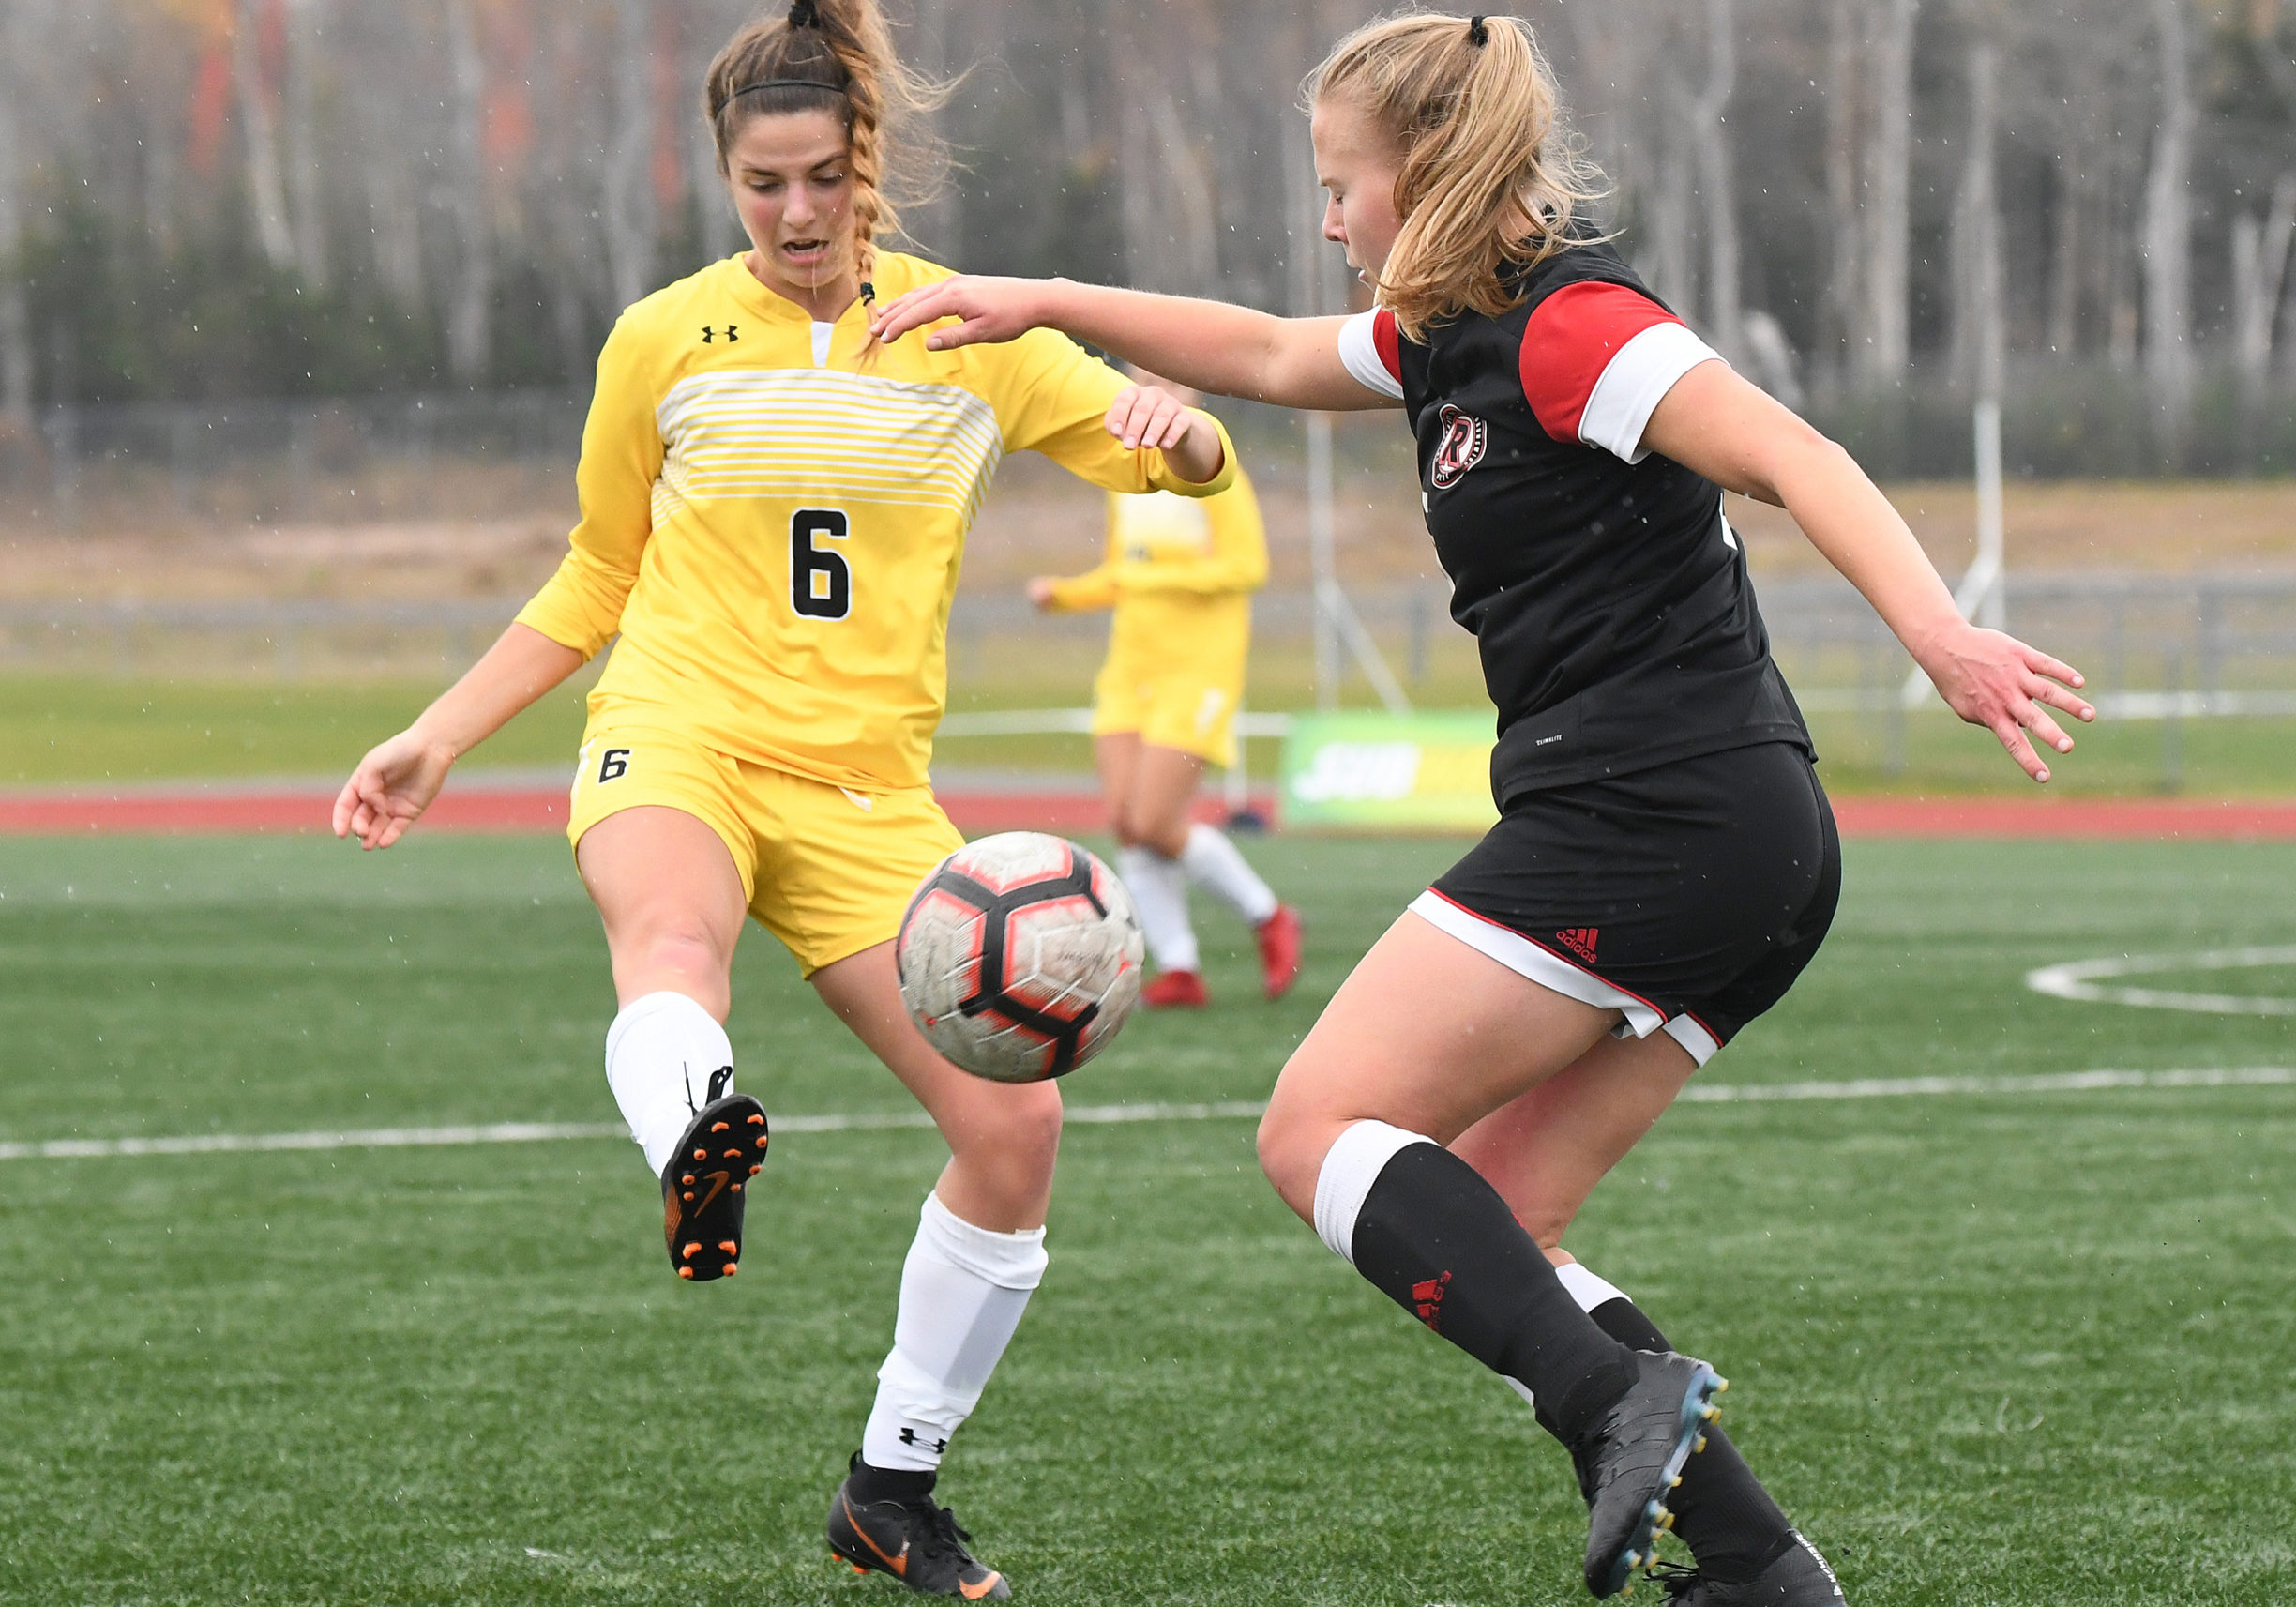 In this image: Two players during the Dalhousie versus University of New Brunswick game on Oct. 31.